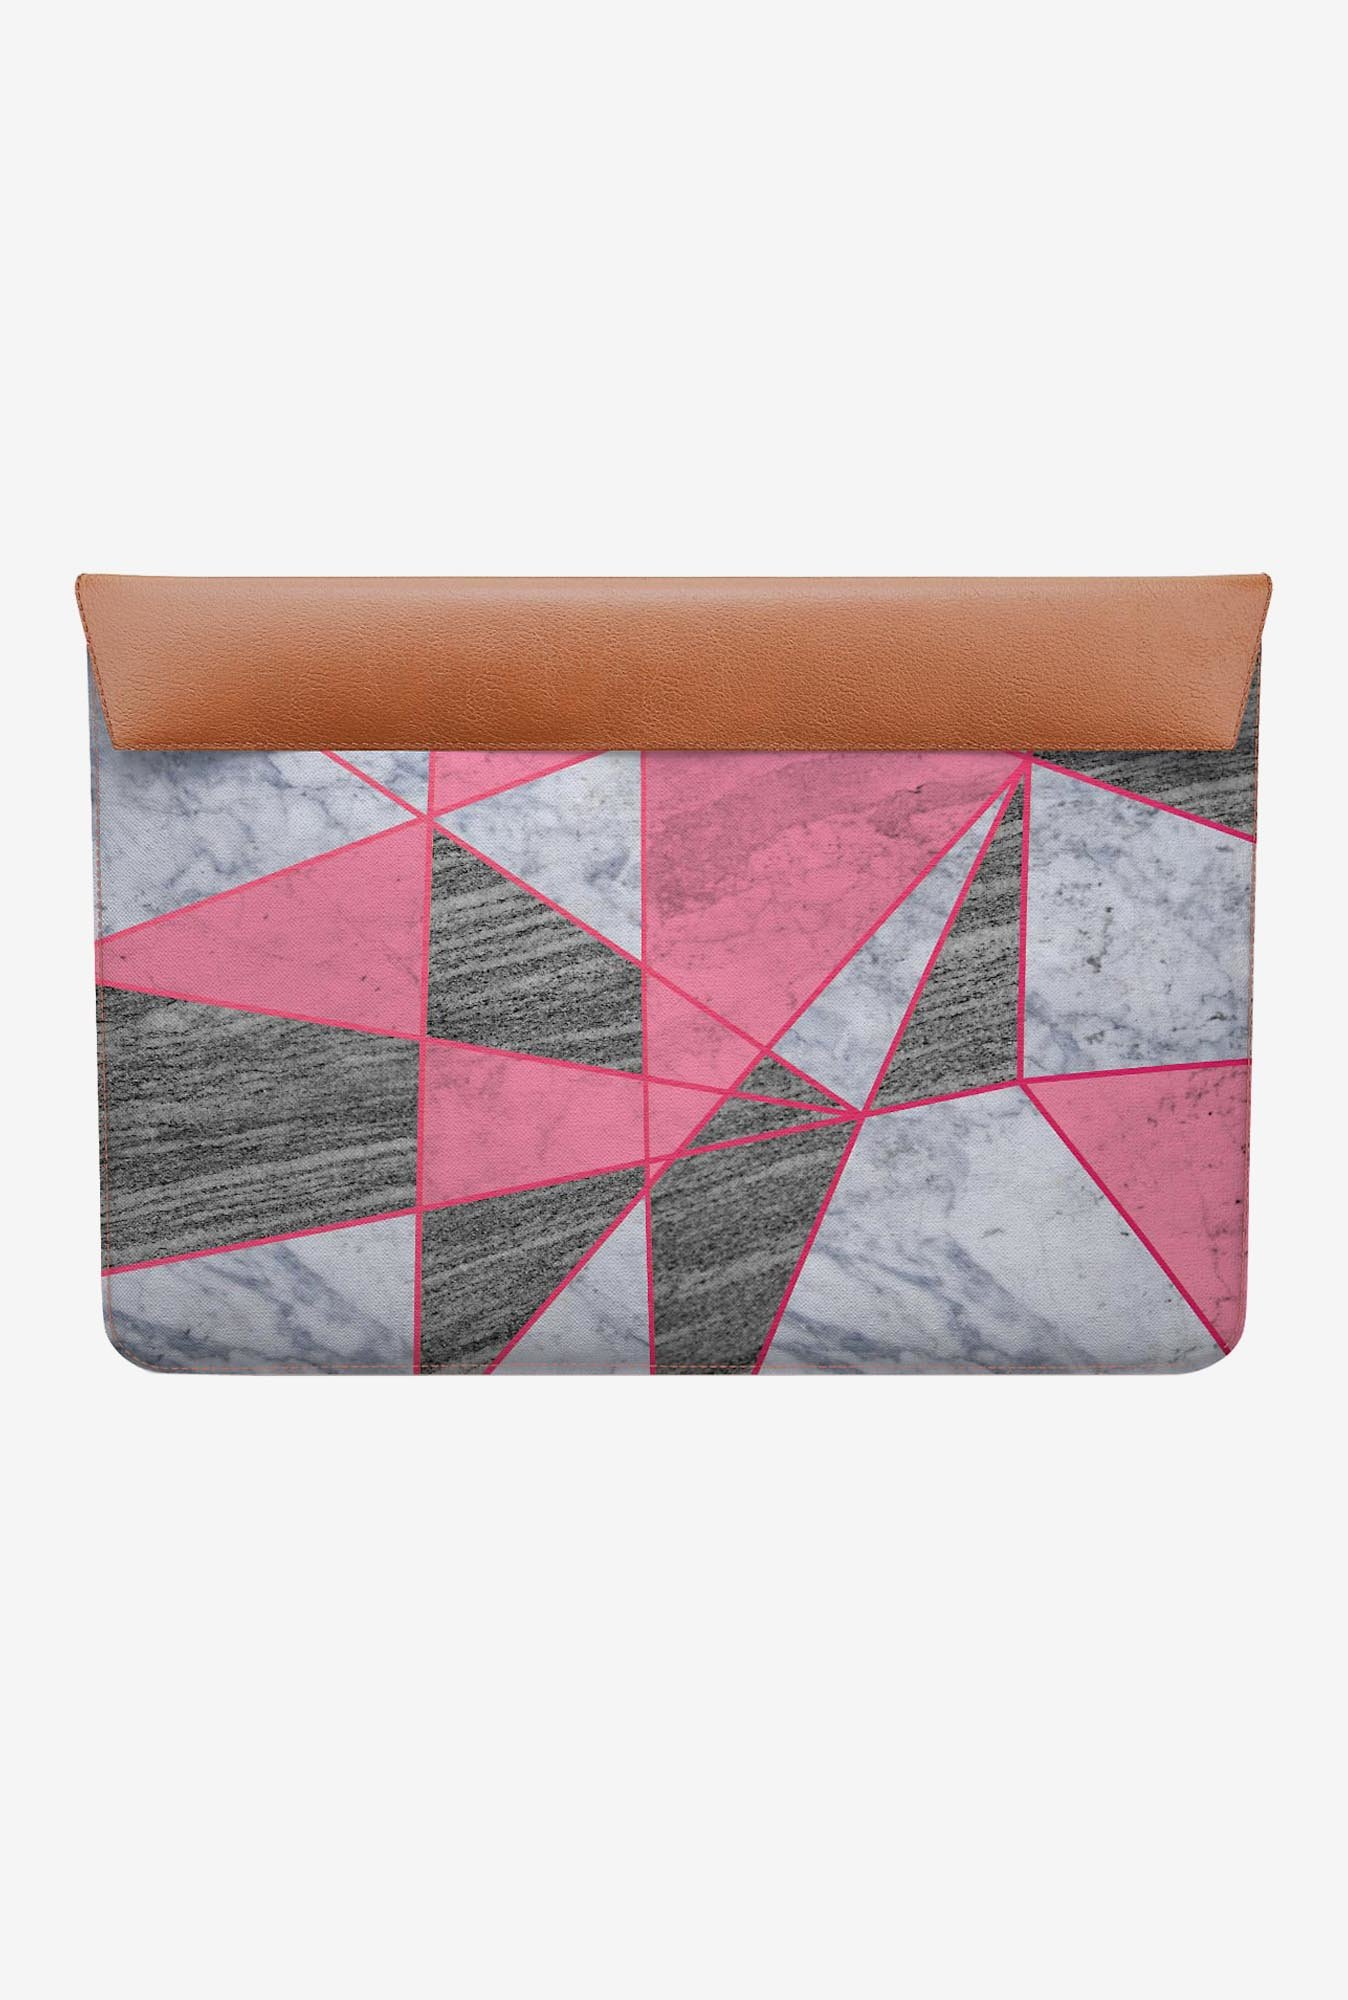 DailyObjects Marble Line Pink MacBook 12 Envelope Sleeve